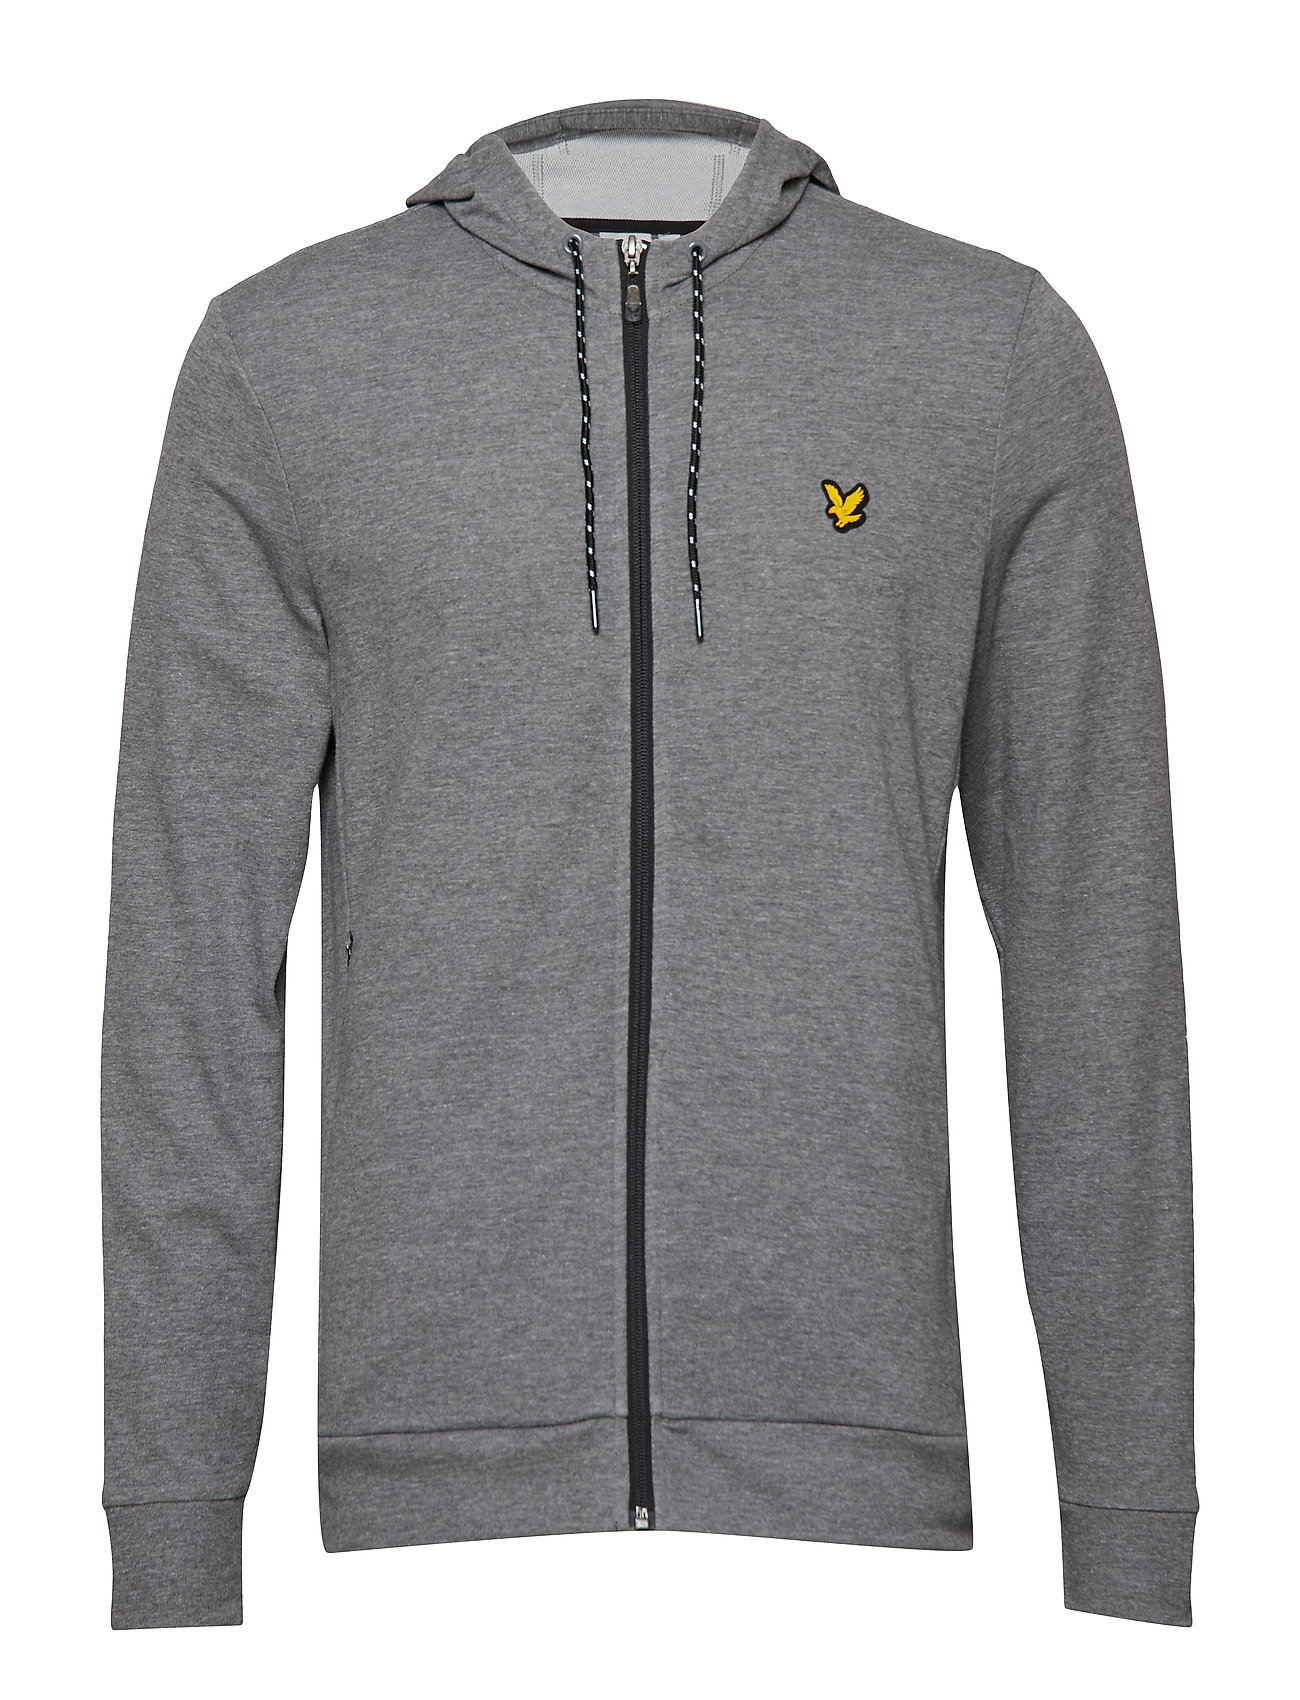 Lyle & Scott Lightweight Training Hoodie Ögrönlar